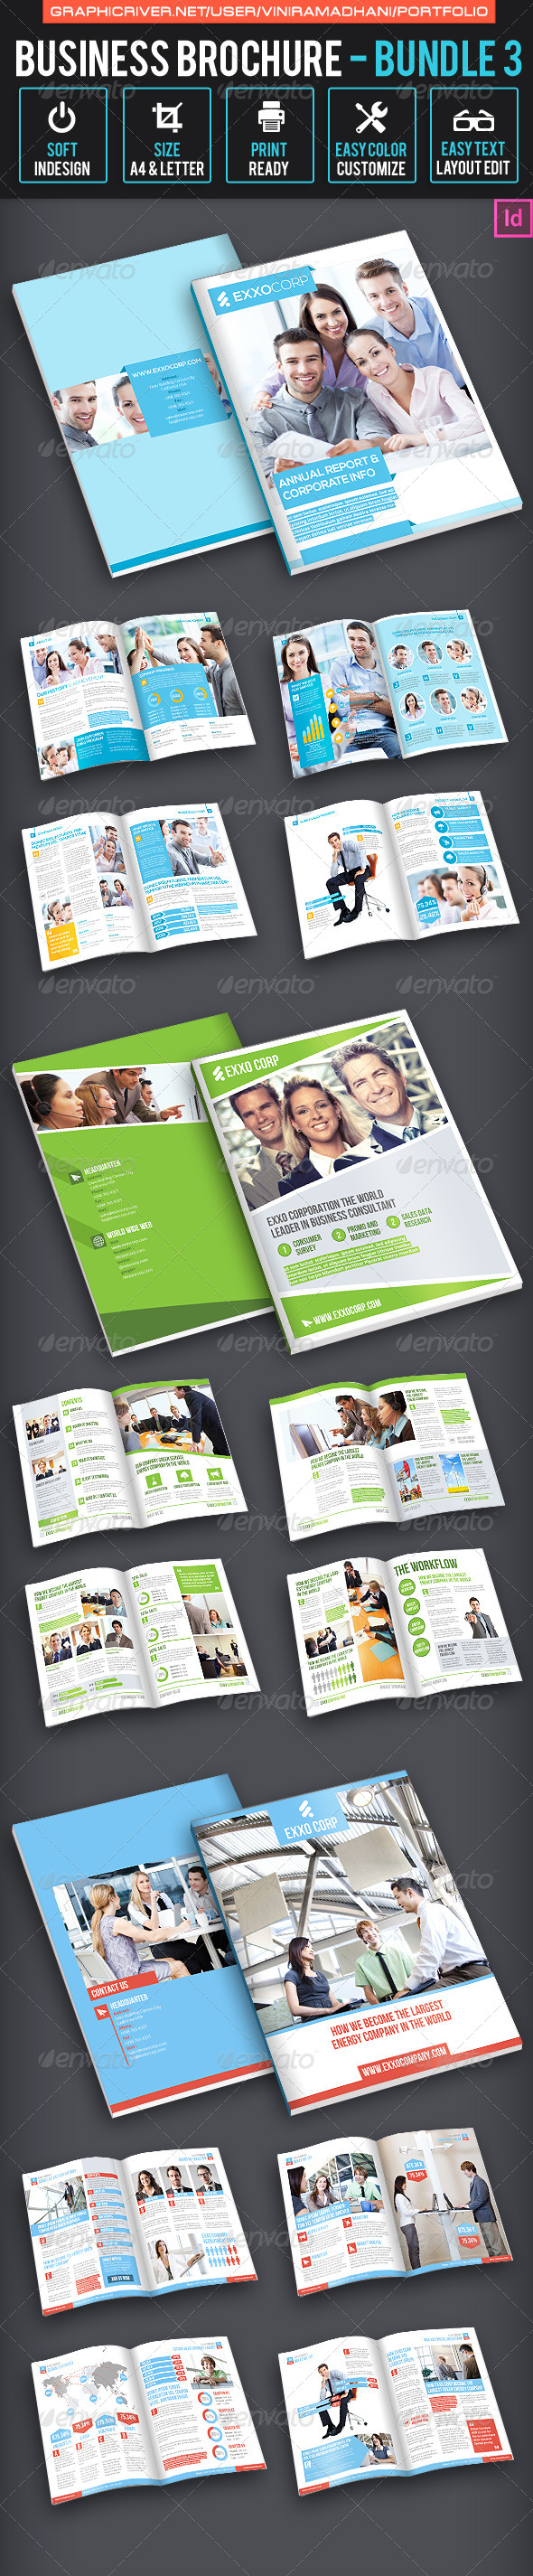 Business Brochure bundle 3 - Corporate Brochures